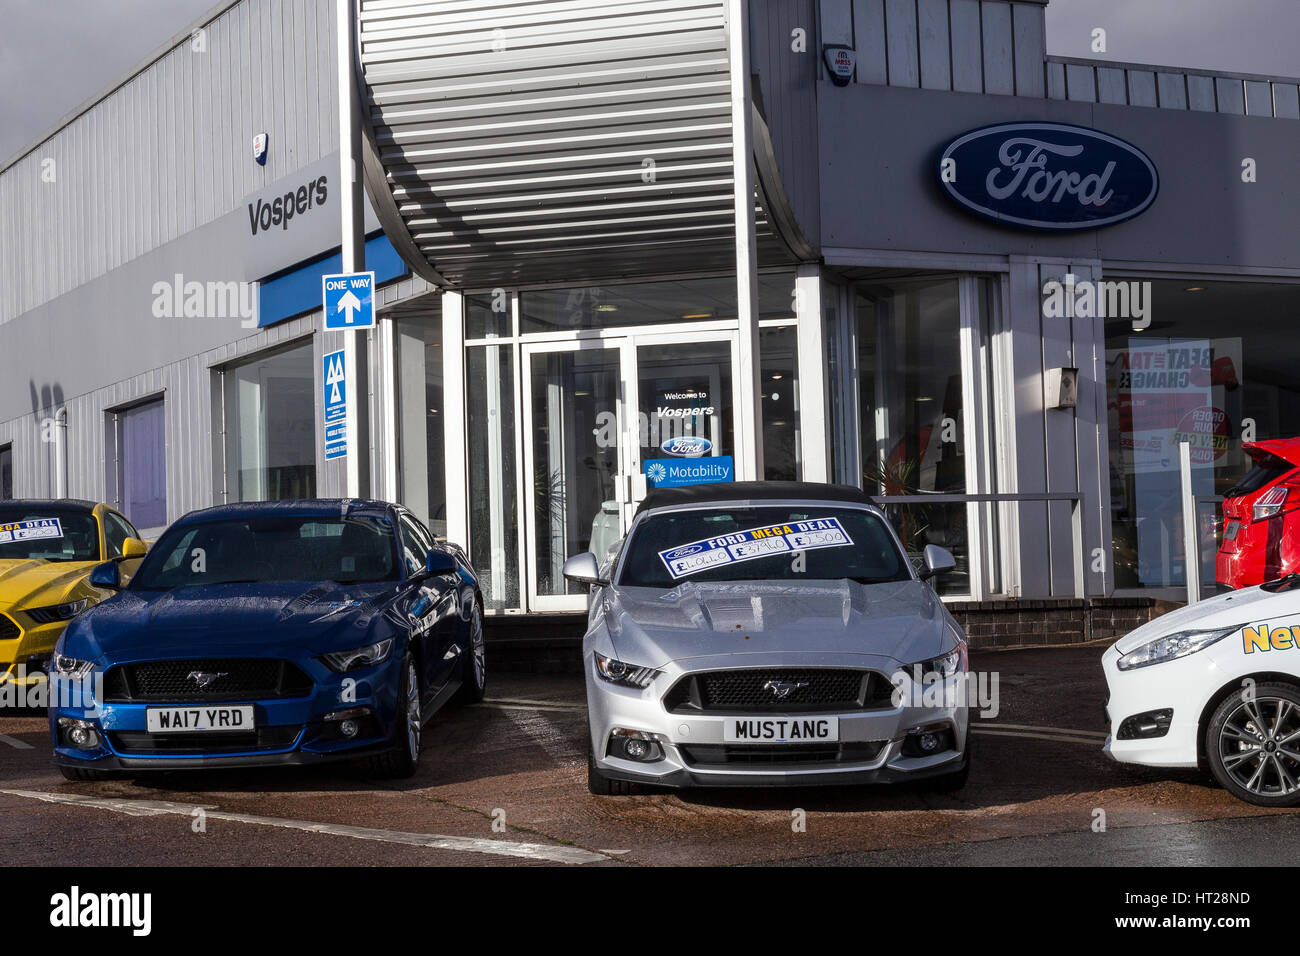 Vospers is one of the leading car dealerships in Devon and Cornwall,ford dealership,A Dealership Now. Models: Fiesta, - Stock Image